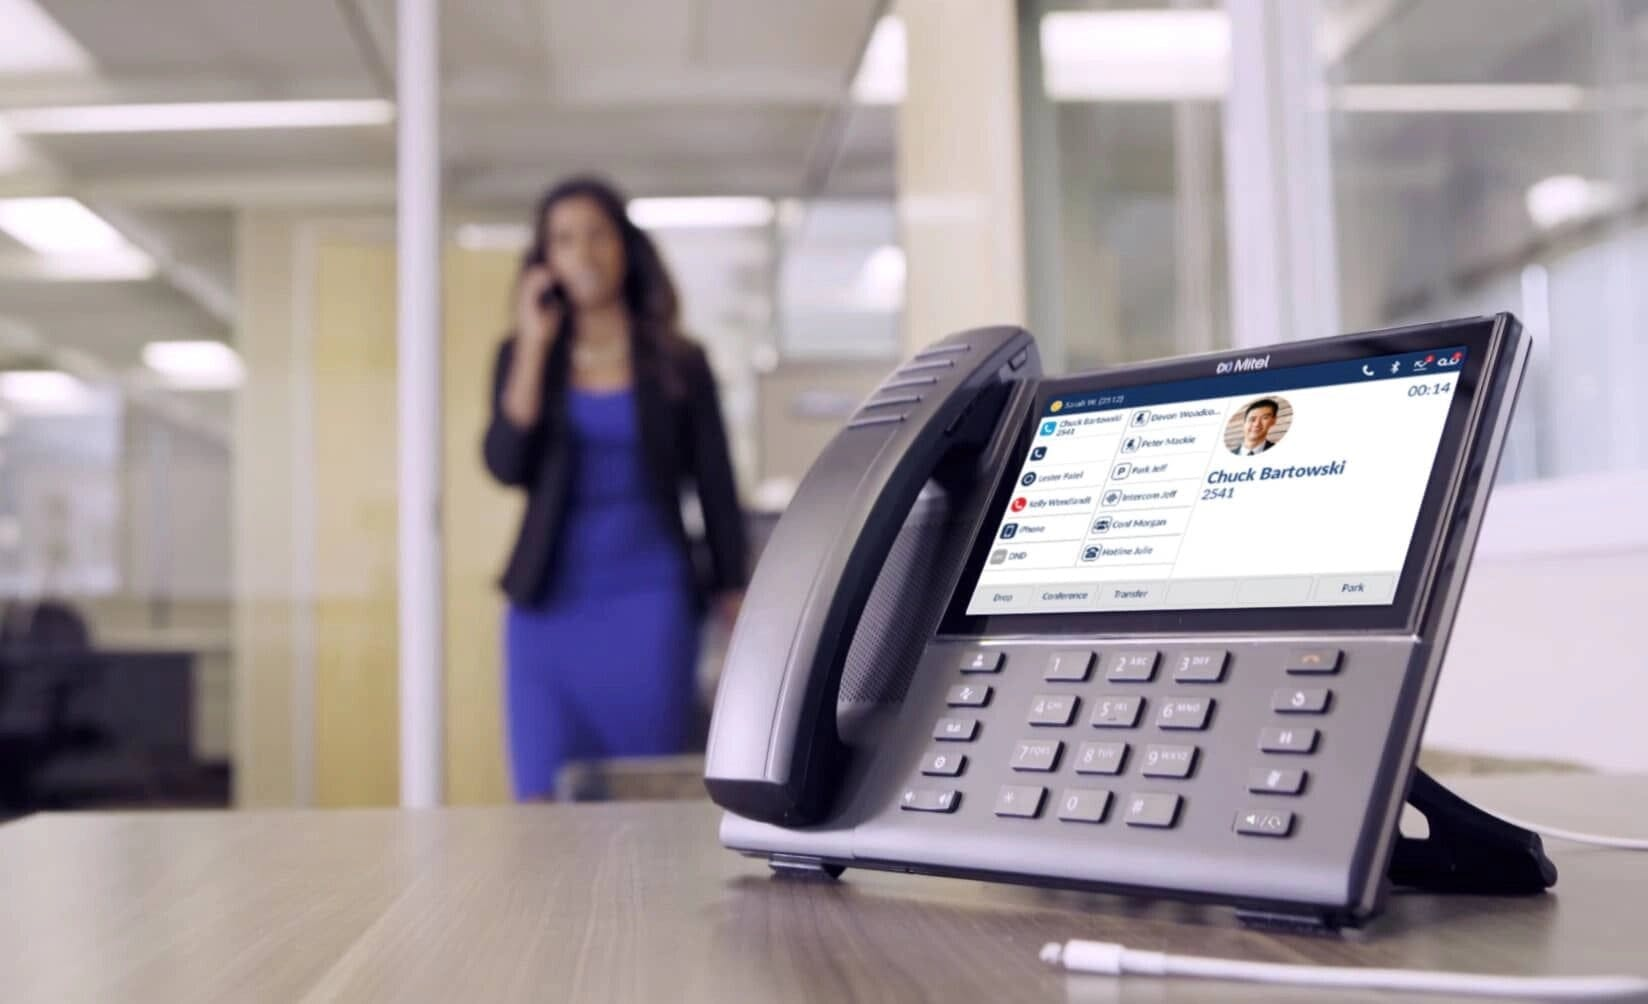 Switch to VoIP To Help Your Business Amid Uncertain Times